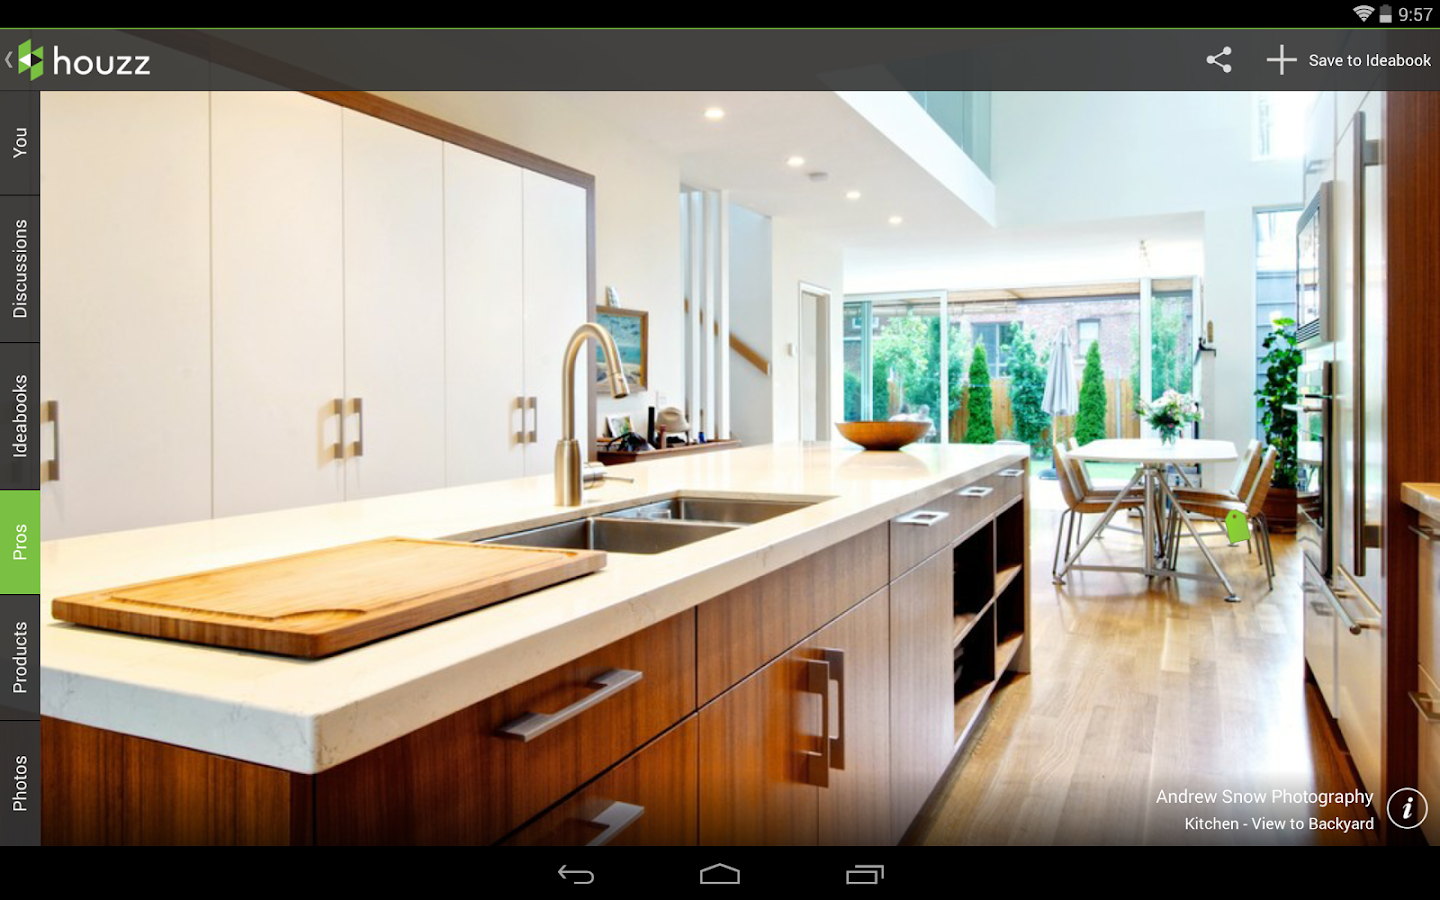 houzz interior design ideas screenshot ForHouzz Interior Design Ideas